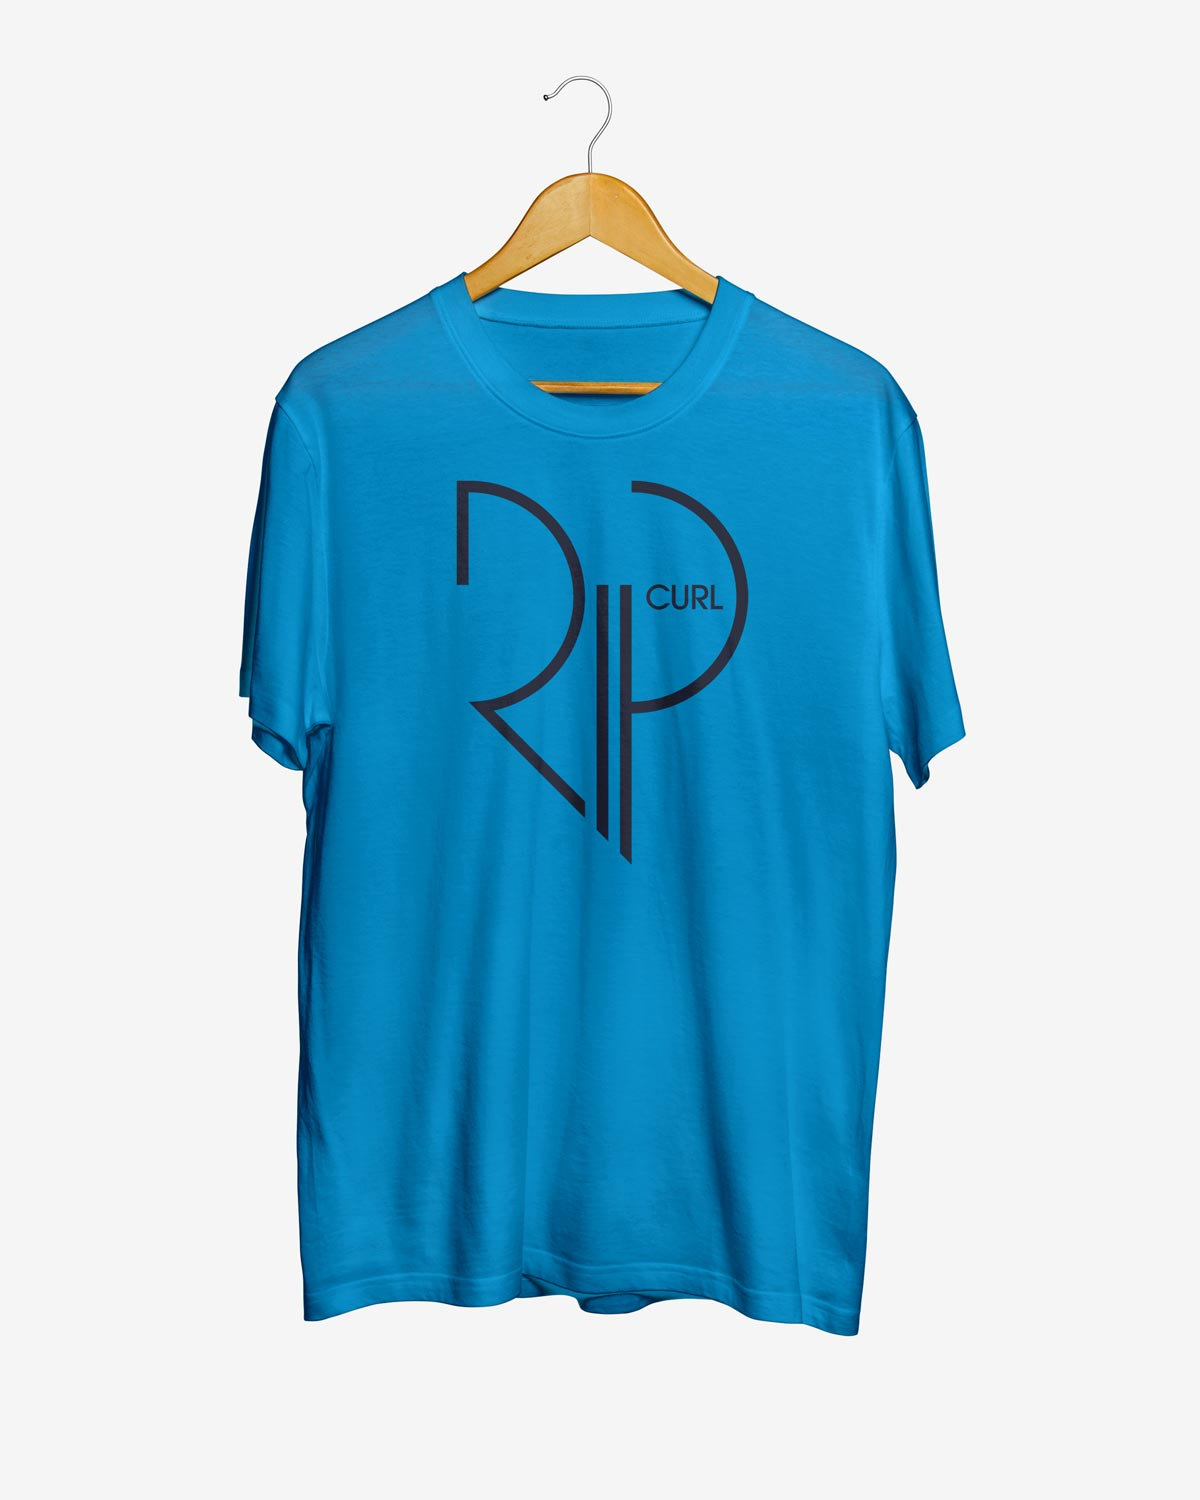 Rip Curl limited edition script t-shirt